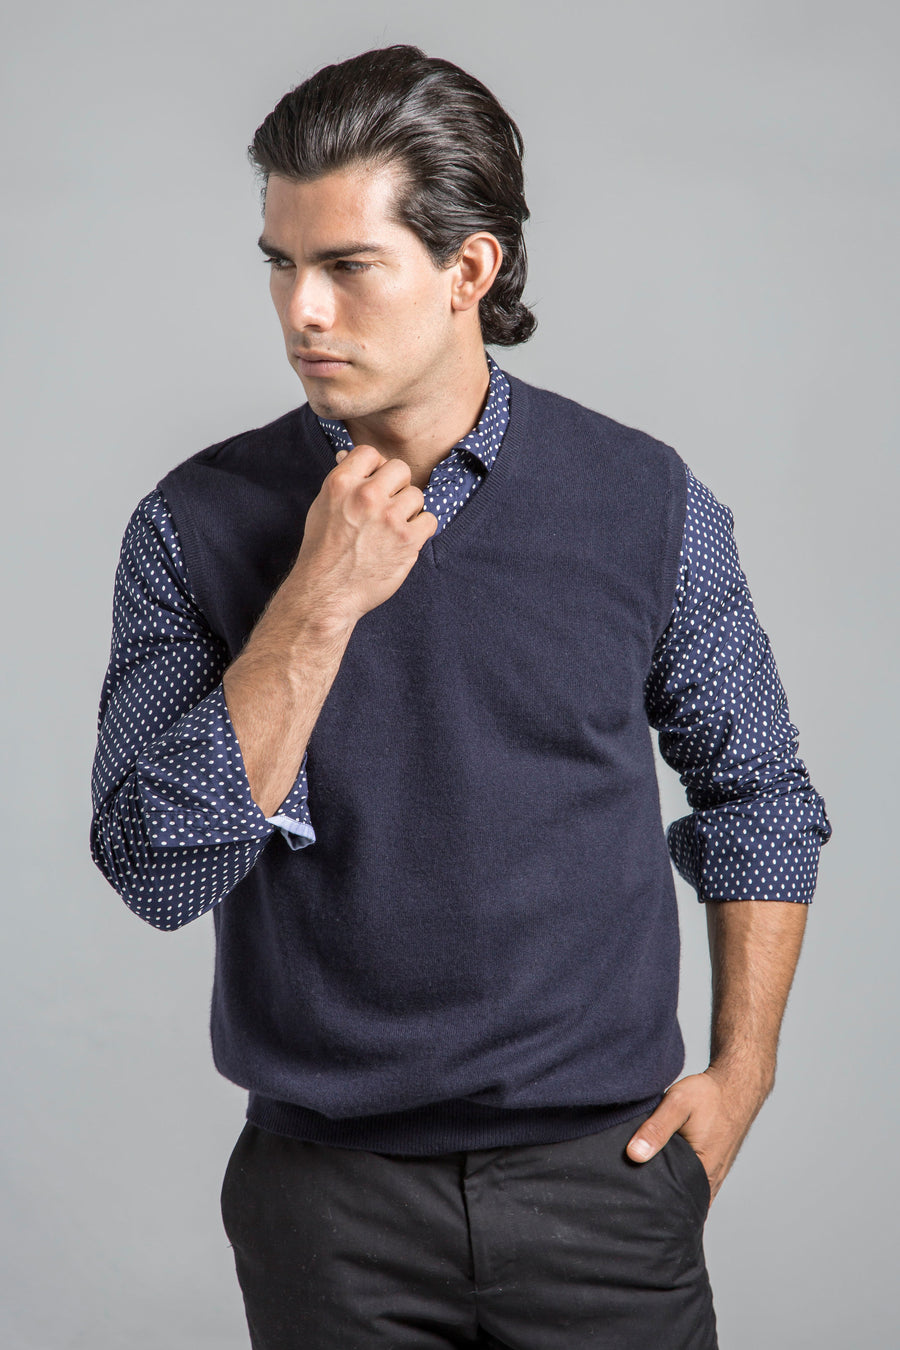 pine cashmere men's classic 100% pure cashmere v-neck sweater vest in navy